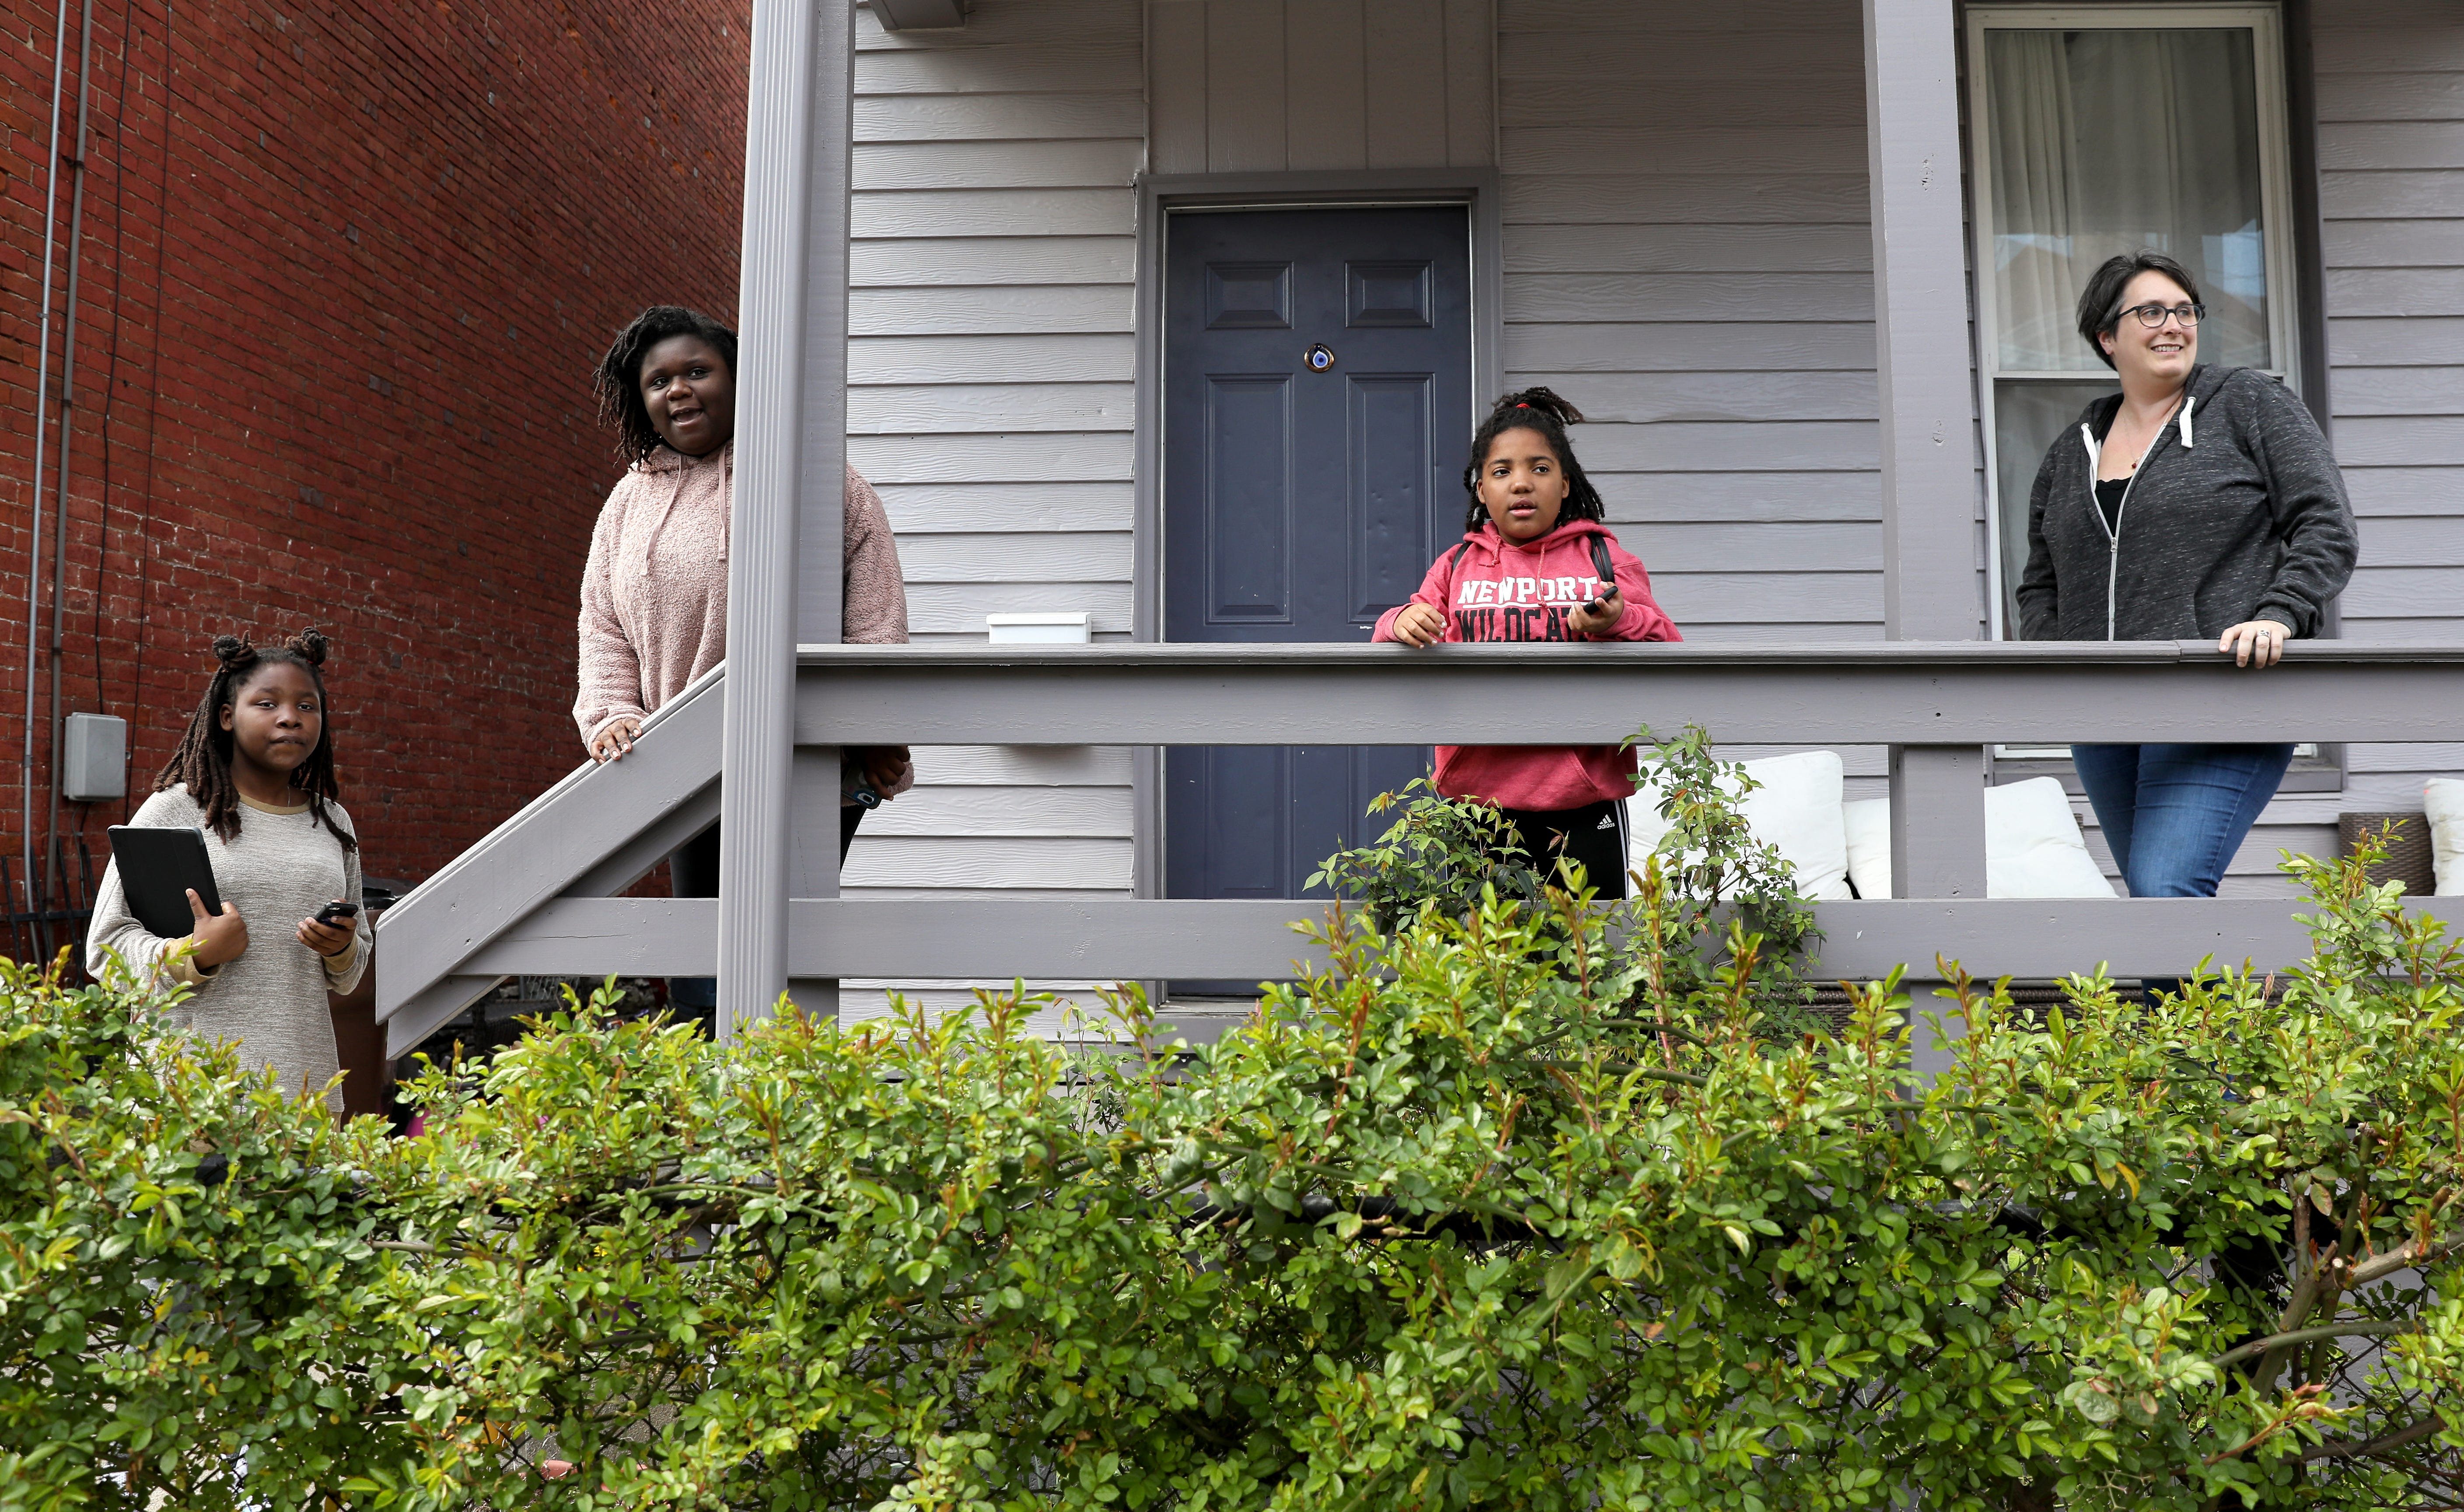 From left: Haddasha Revely-Curtin, 12, Christy Revely-Curtin, 13, Zionnah Revely-Curtin, 7, and Rose Curtin, spot a neighborhood on Columbia Street, Thursday, April 2, 2020, in Newport Ky.